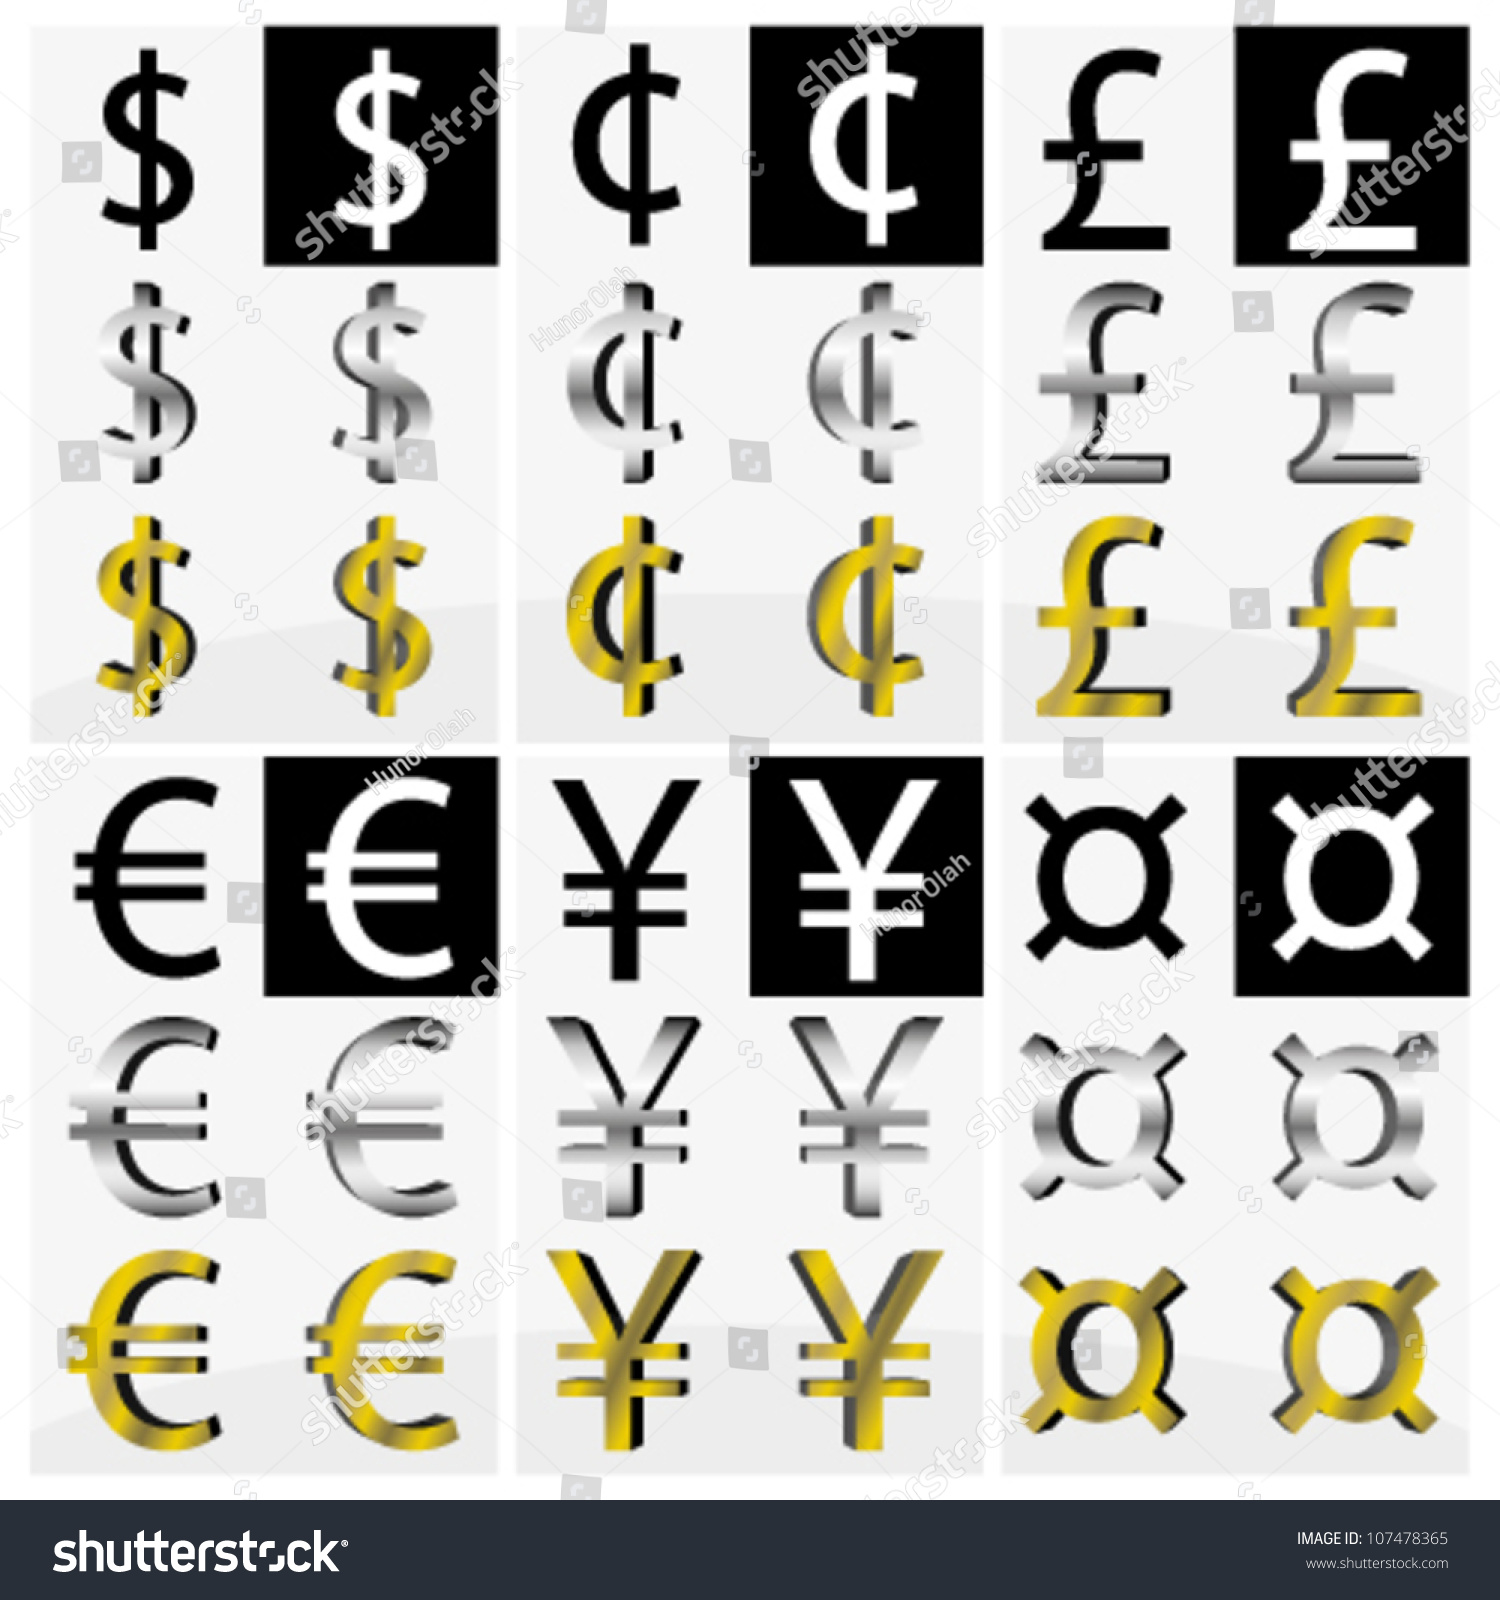 Collection different currency symbols black white stock vector collection of different currency symbols in black and white silver and gold color buycottarizona